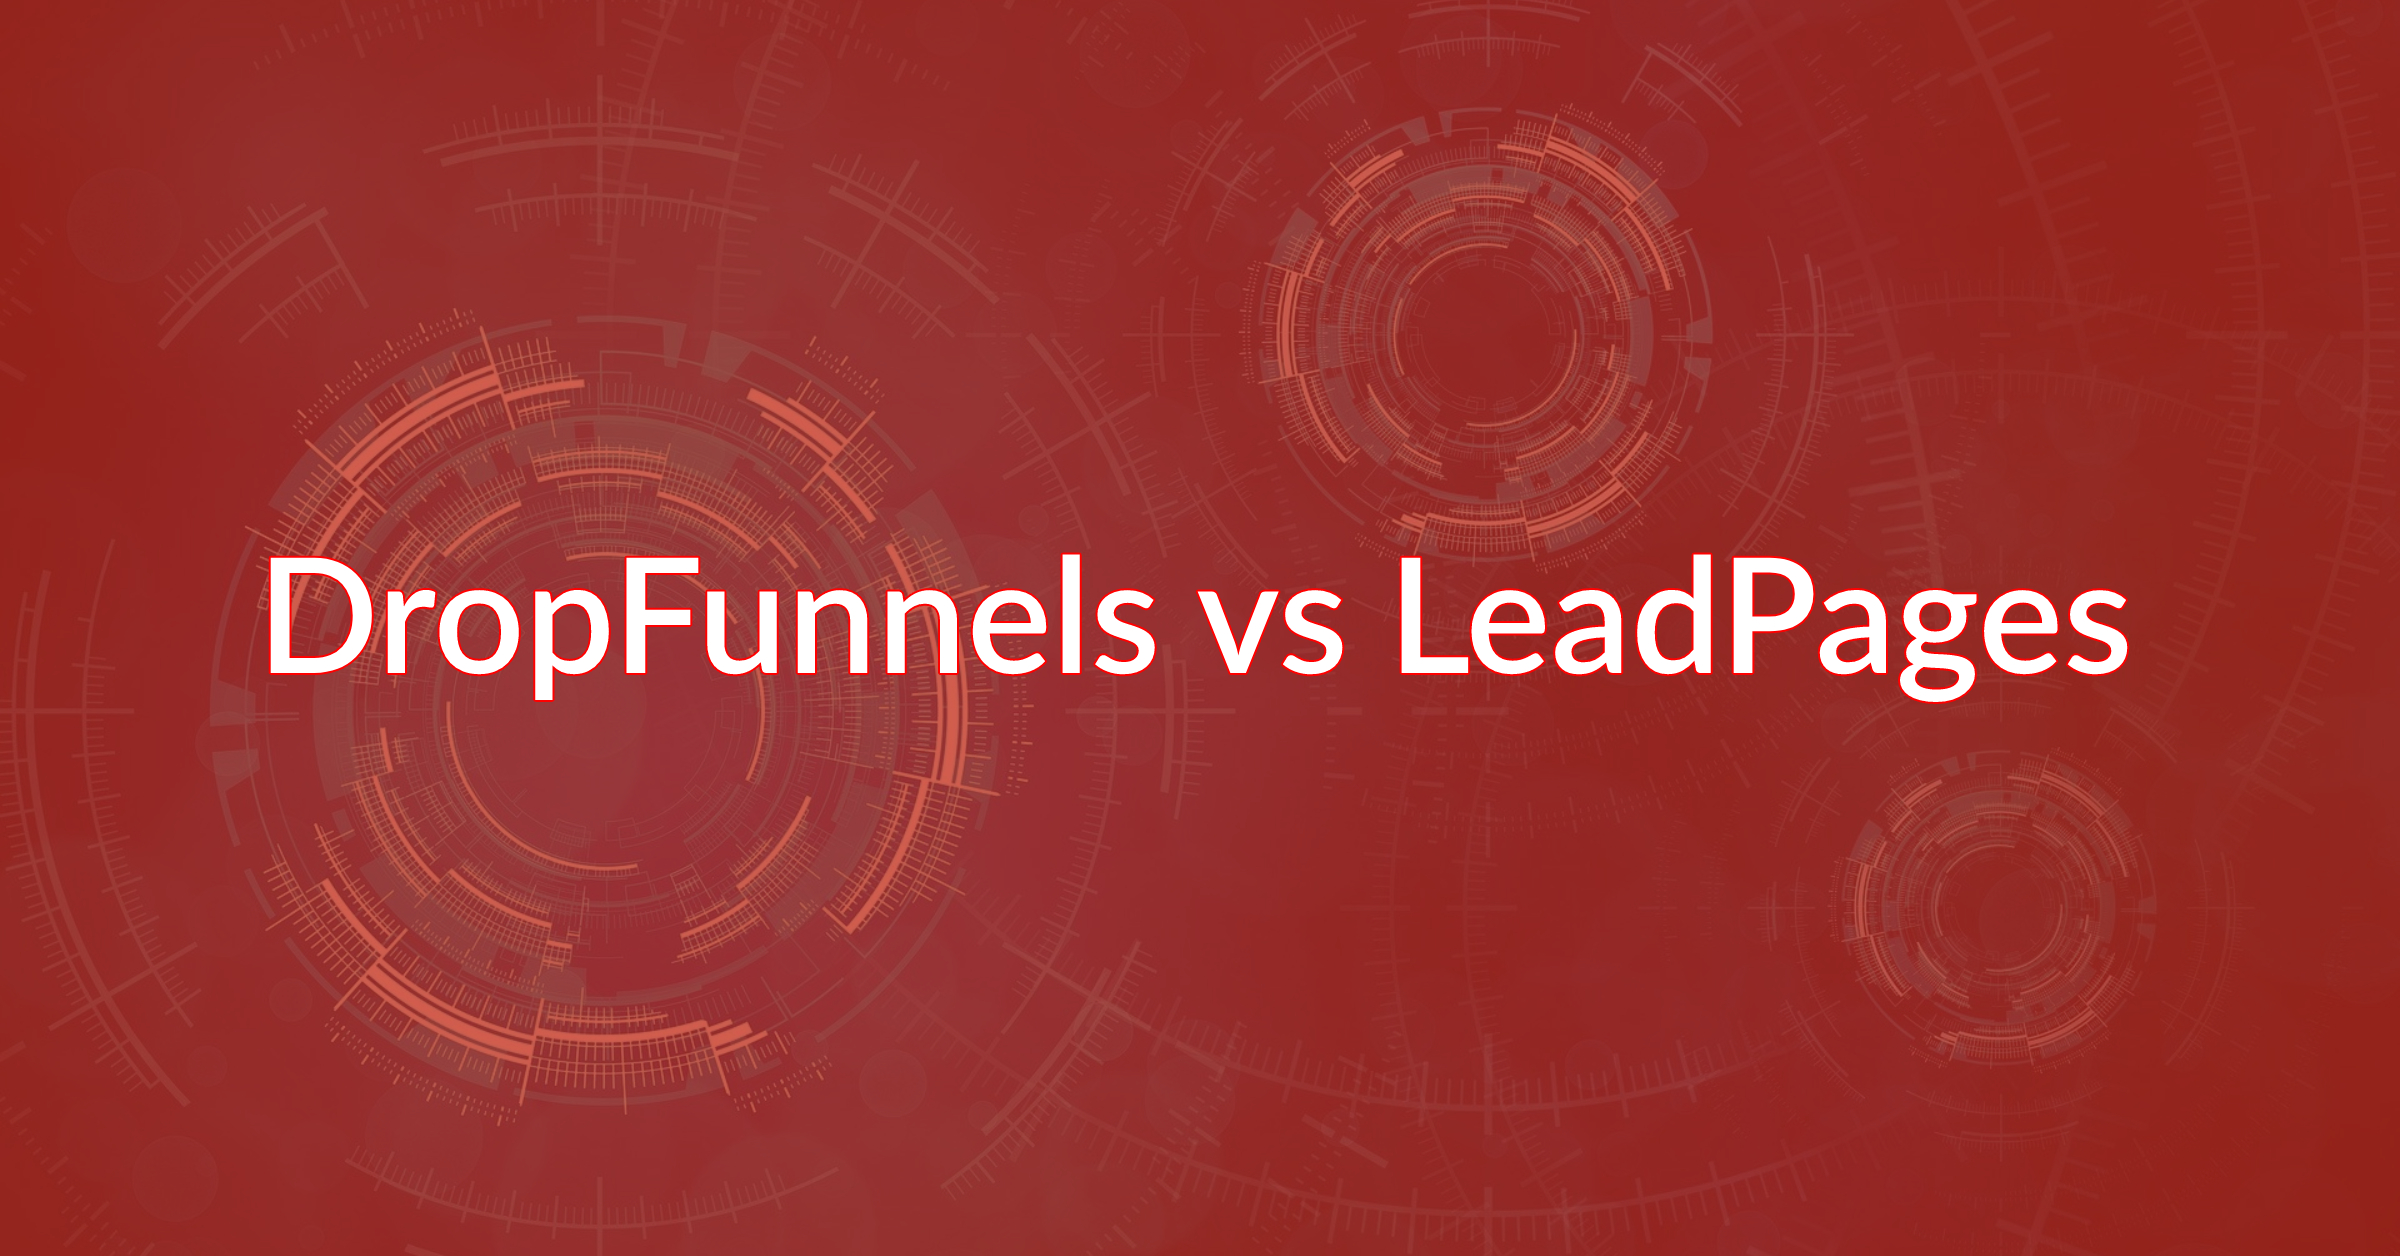 DropFunnels vs LeadPages: One Page Builder Clearly Wins